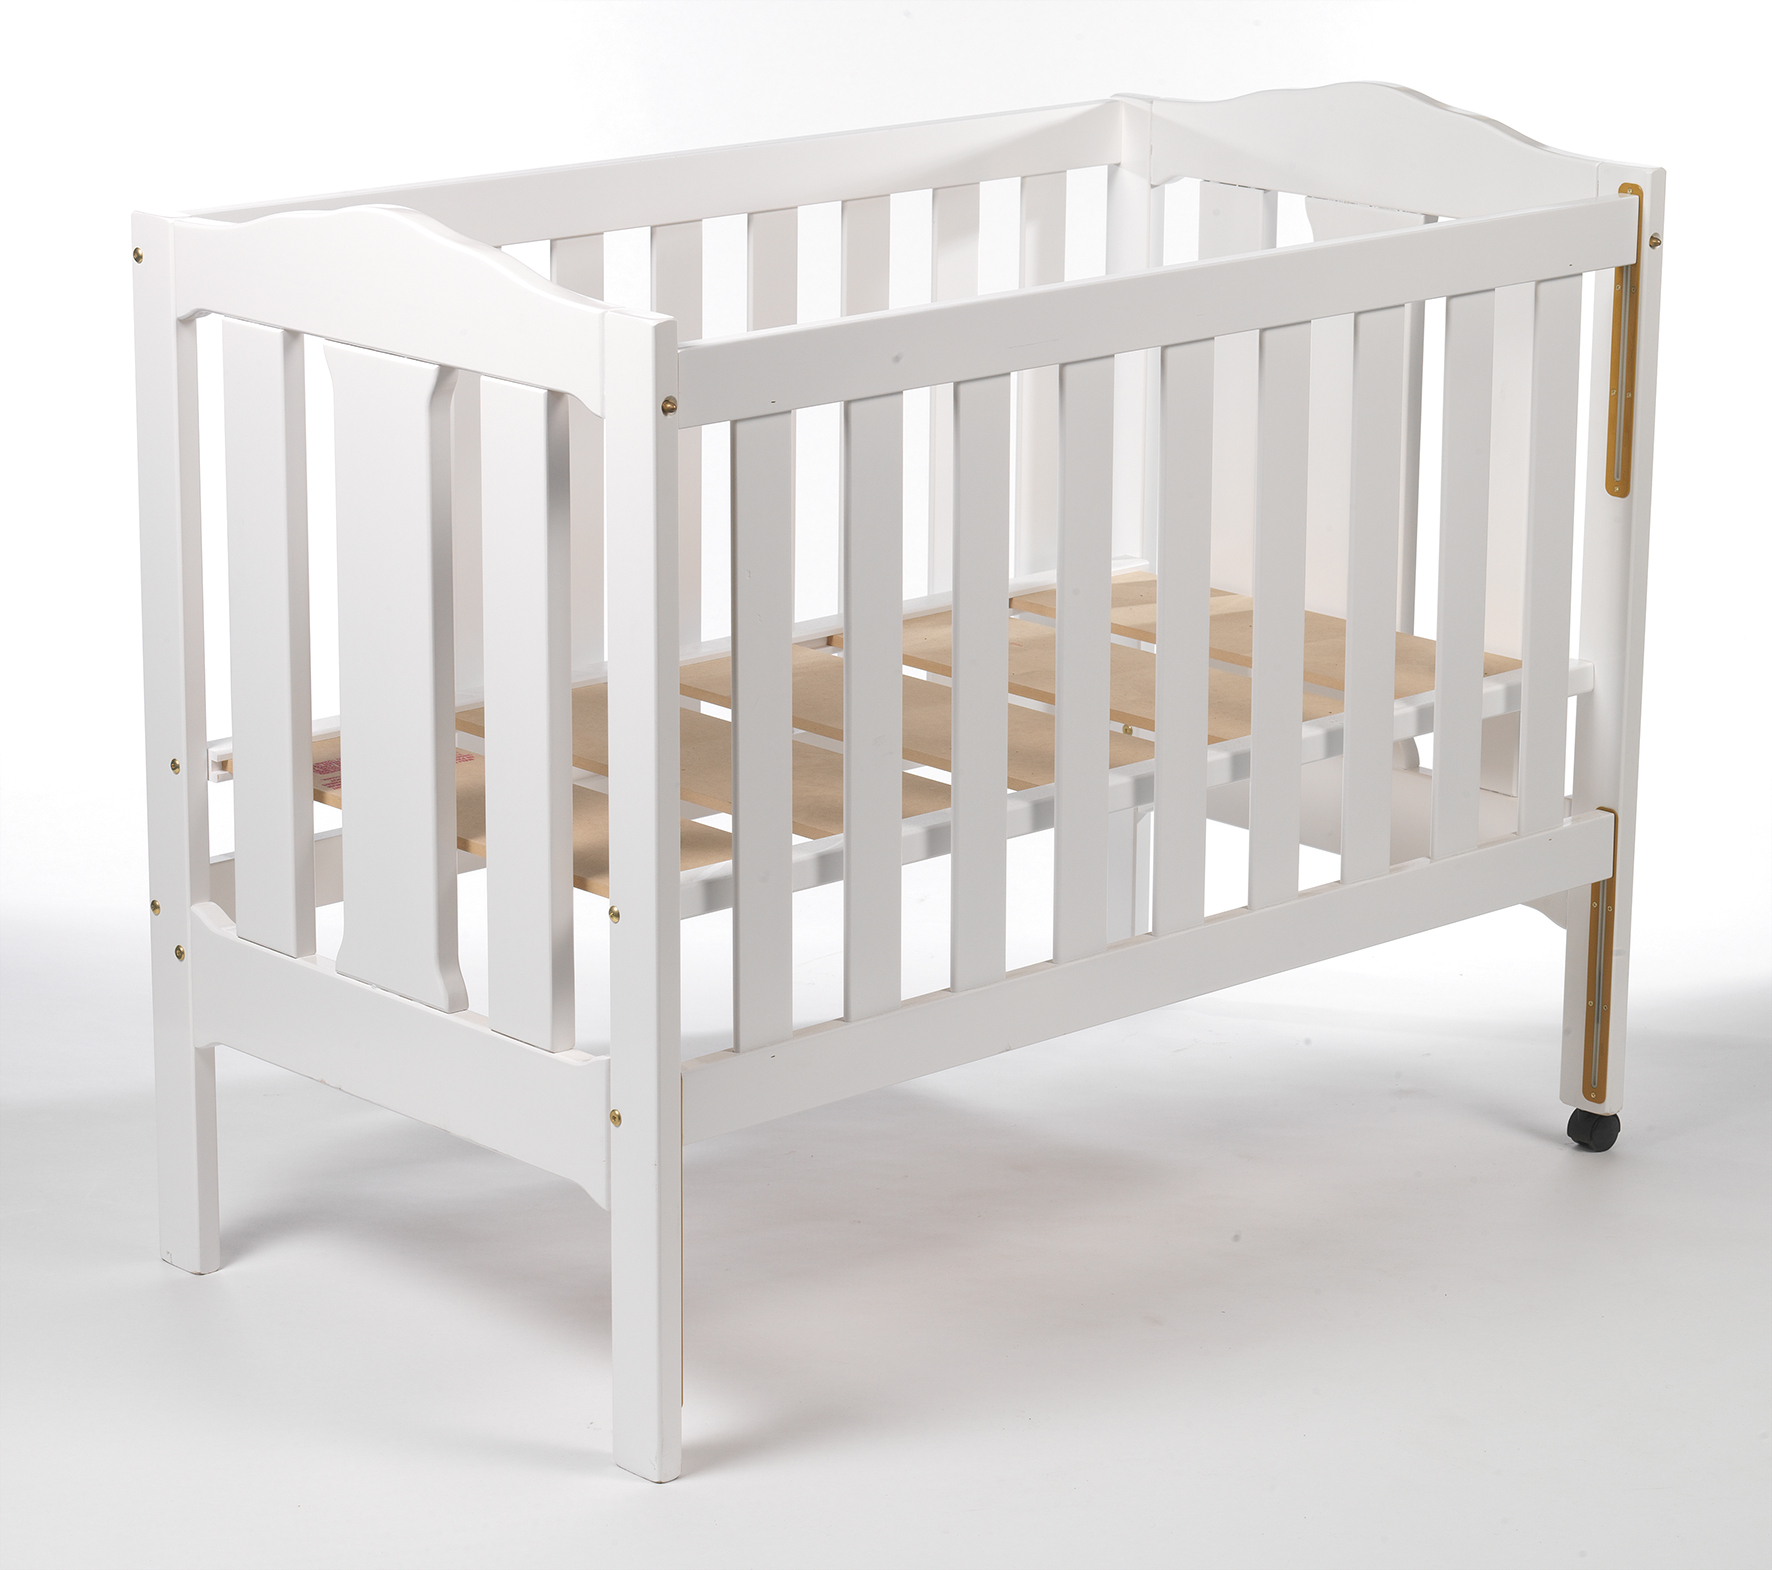 baby sofas australia extra deep sofa perth household cots product safety